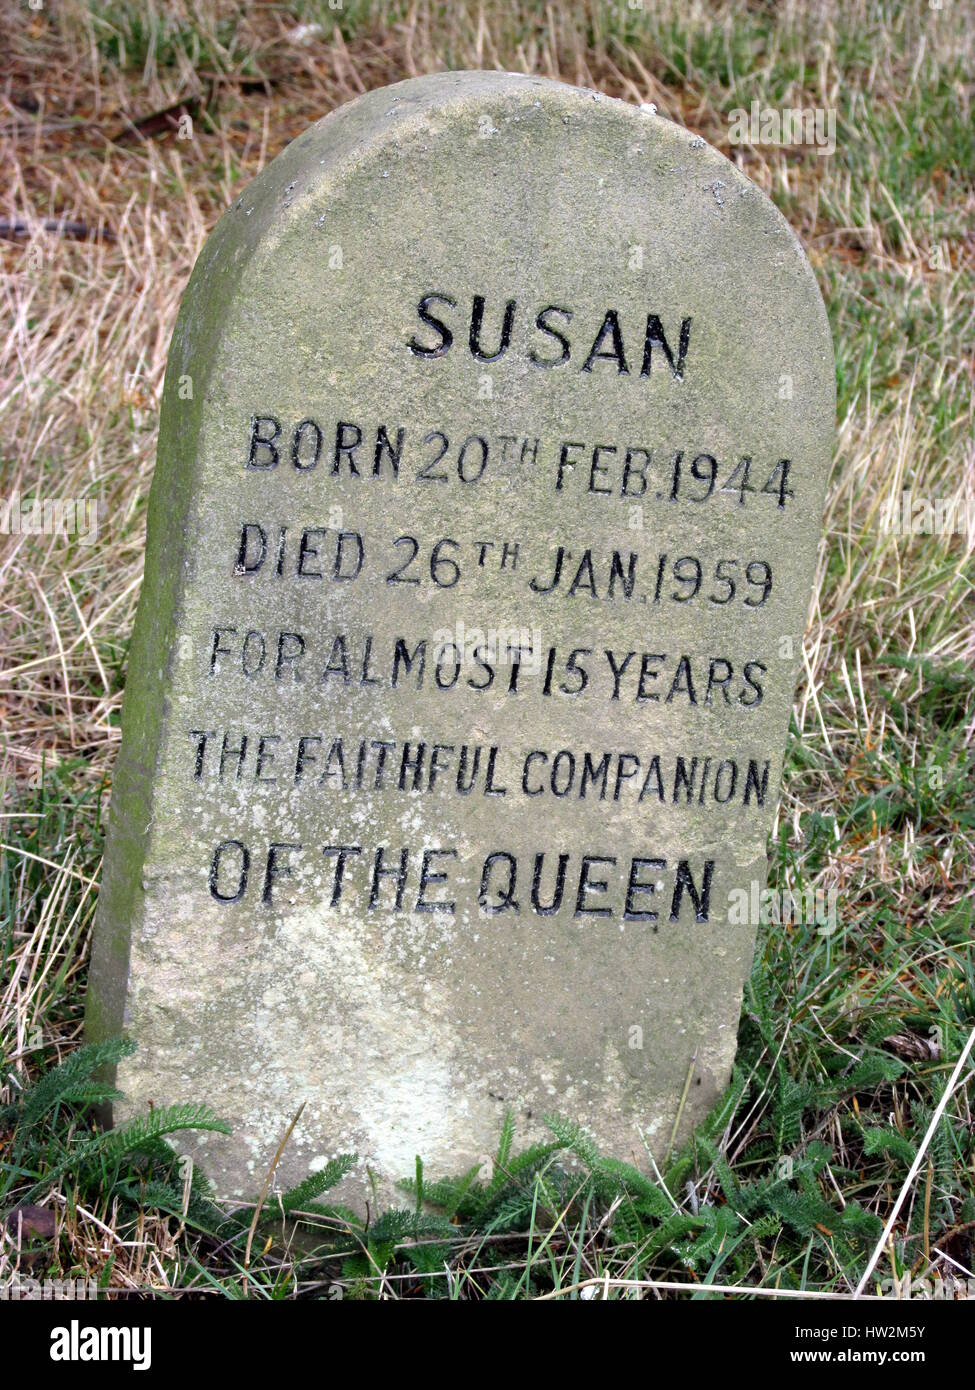 The Graves of the Queen's Corgi's and other royal family pets at Sandringham House, Norfolk. - Stock Image